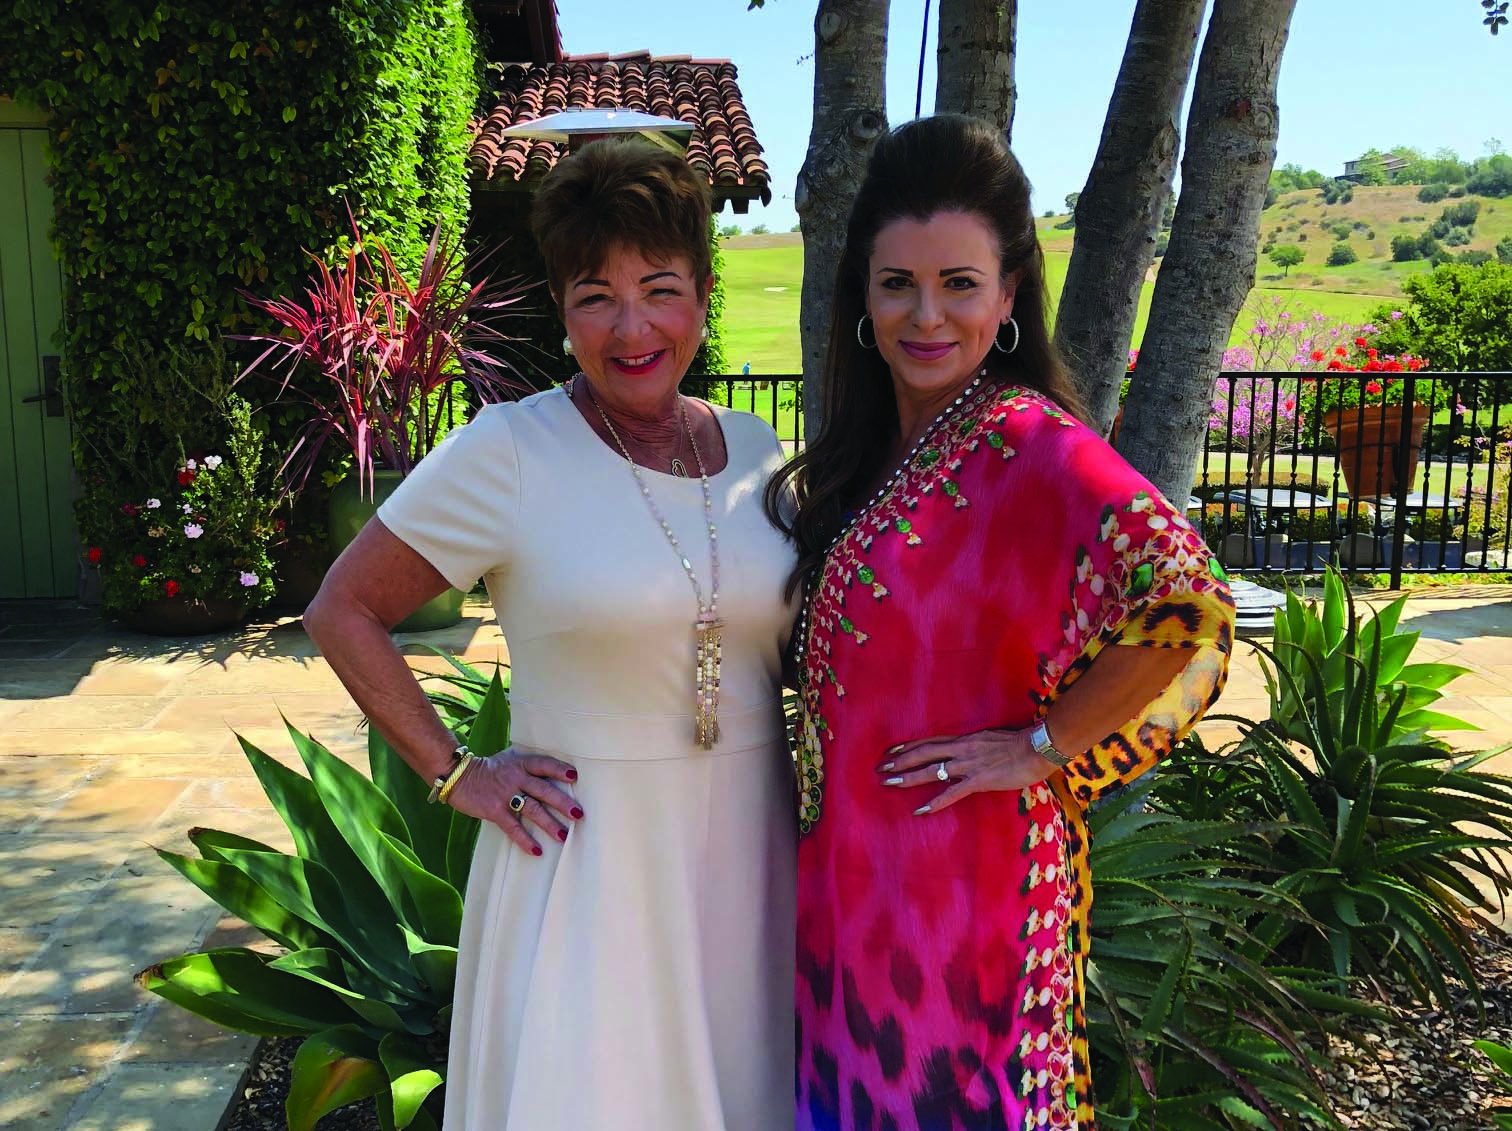 'Browse, Brunch and Buy' raises money for Breast Cancer Angels